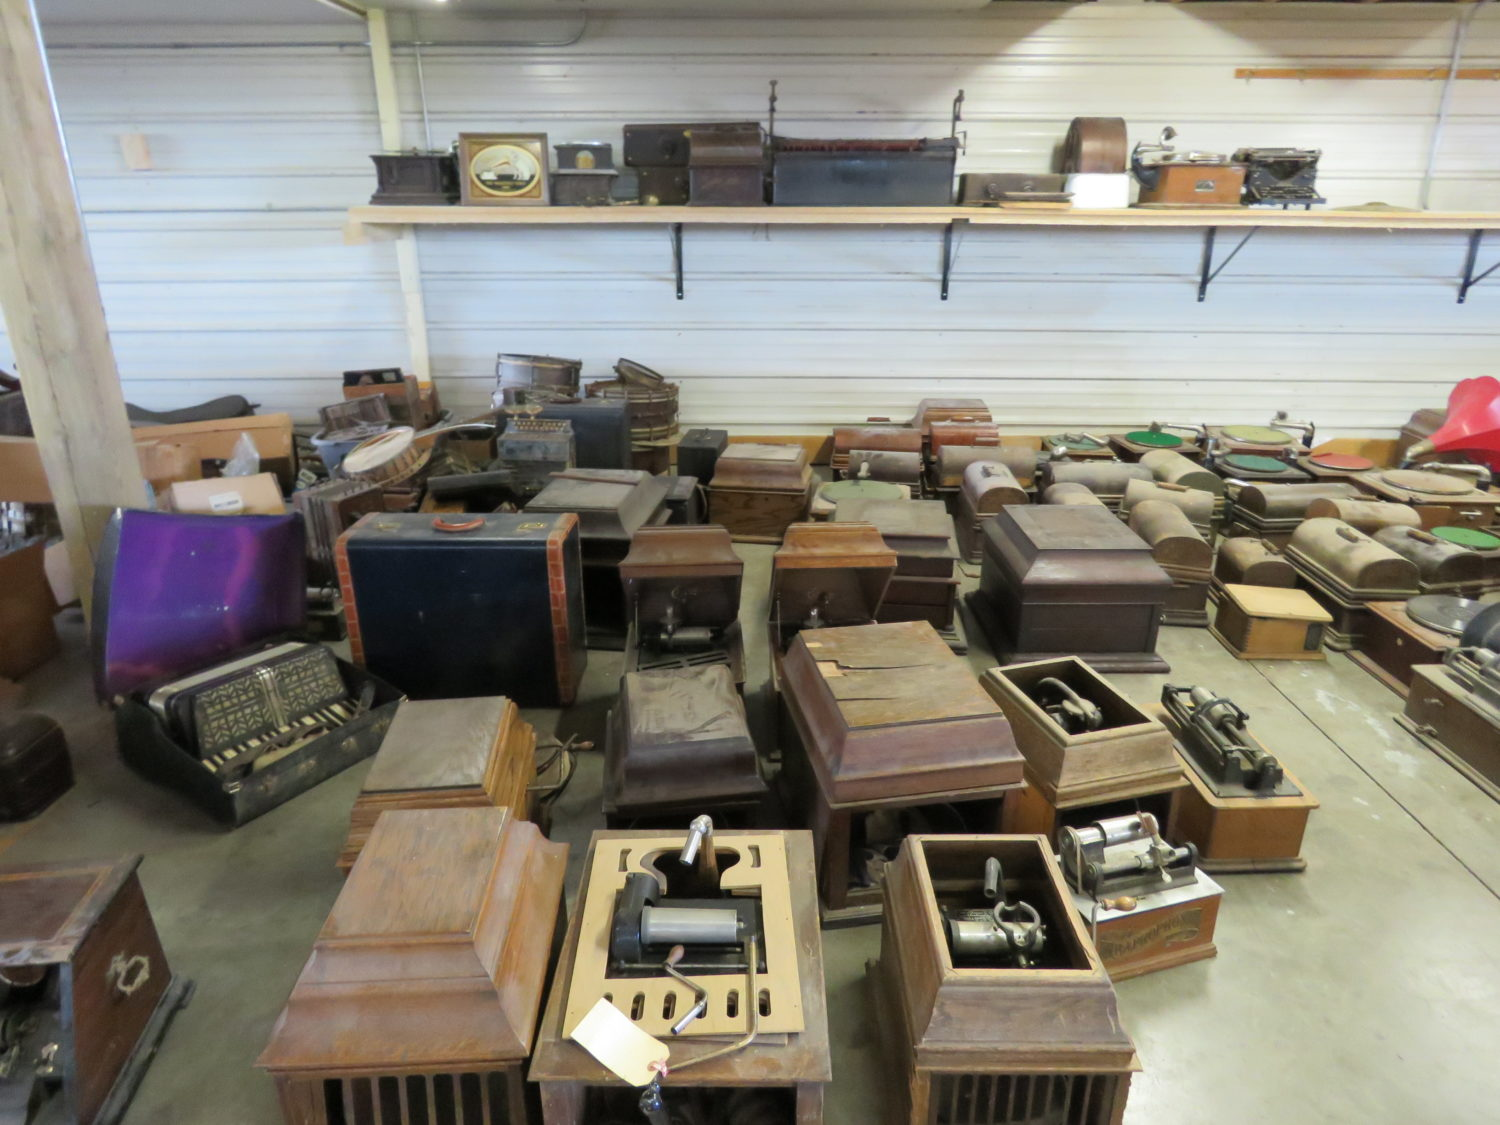 Day 2- The Roger (Bill) Dickenson Estate- Player Pianos, Collectibles, and More!  - image 10